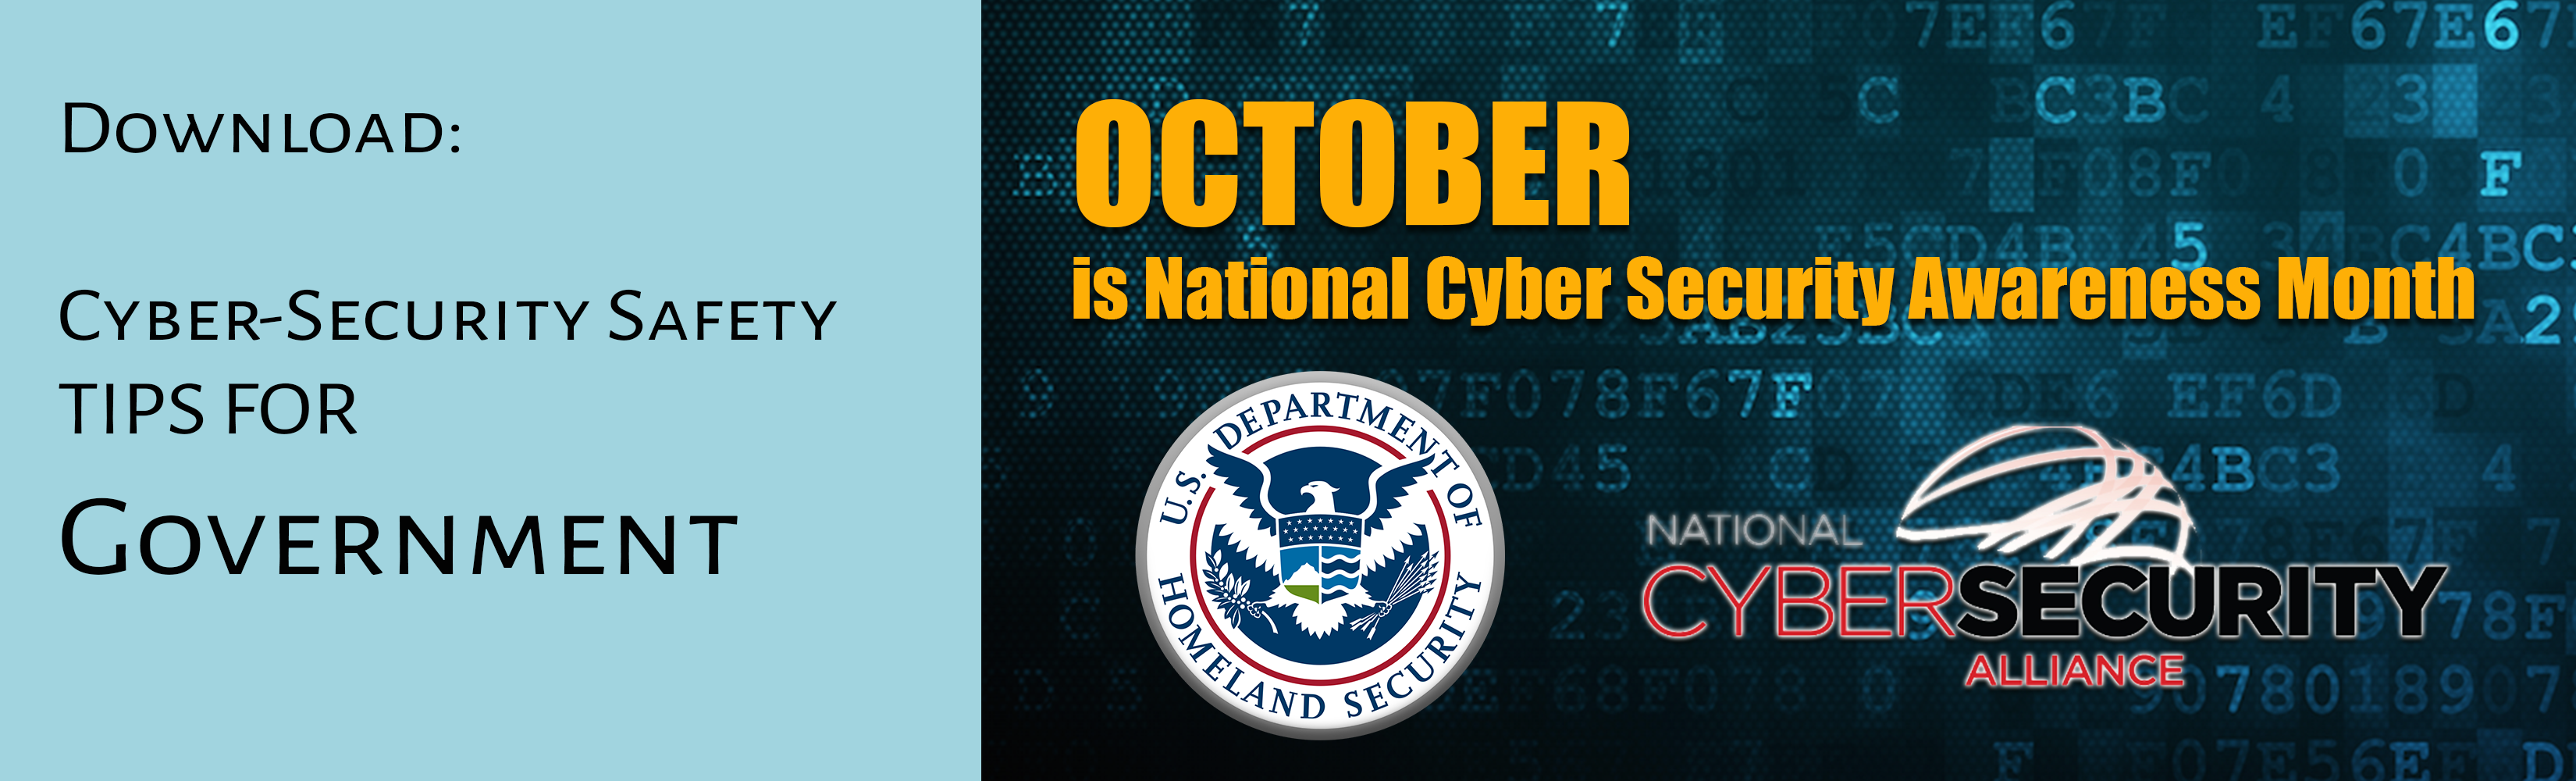 DHS_Tip Card_Government, cyber security